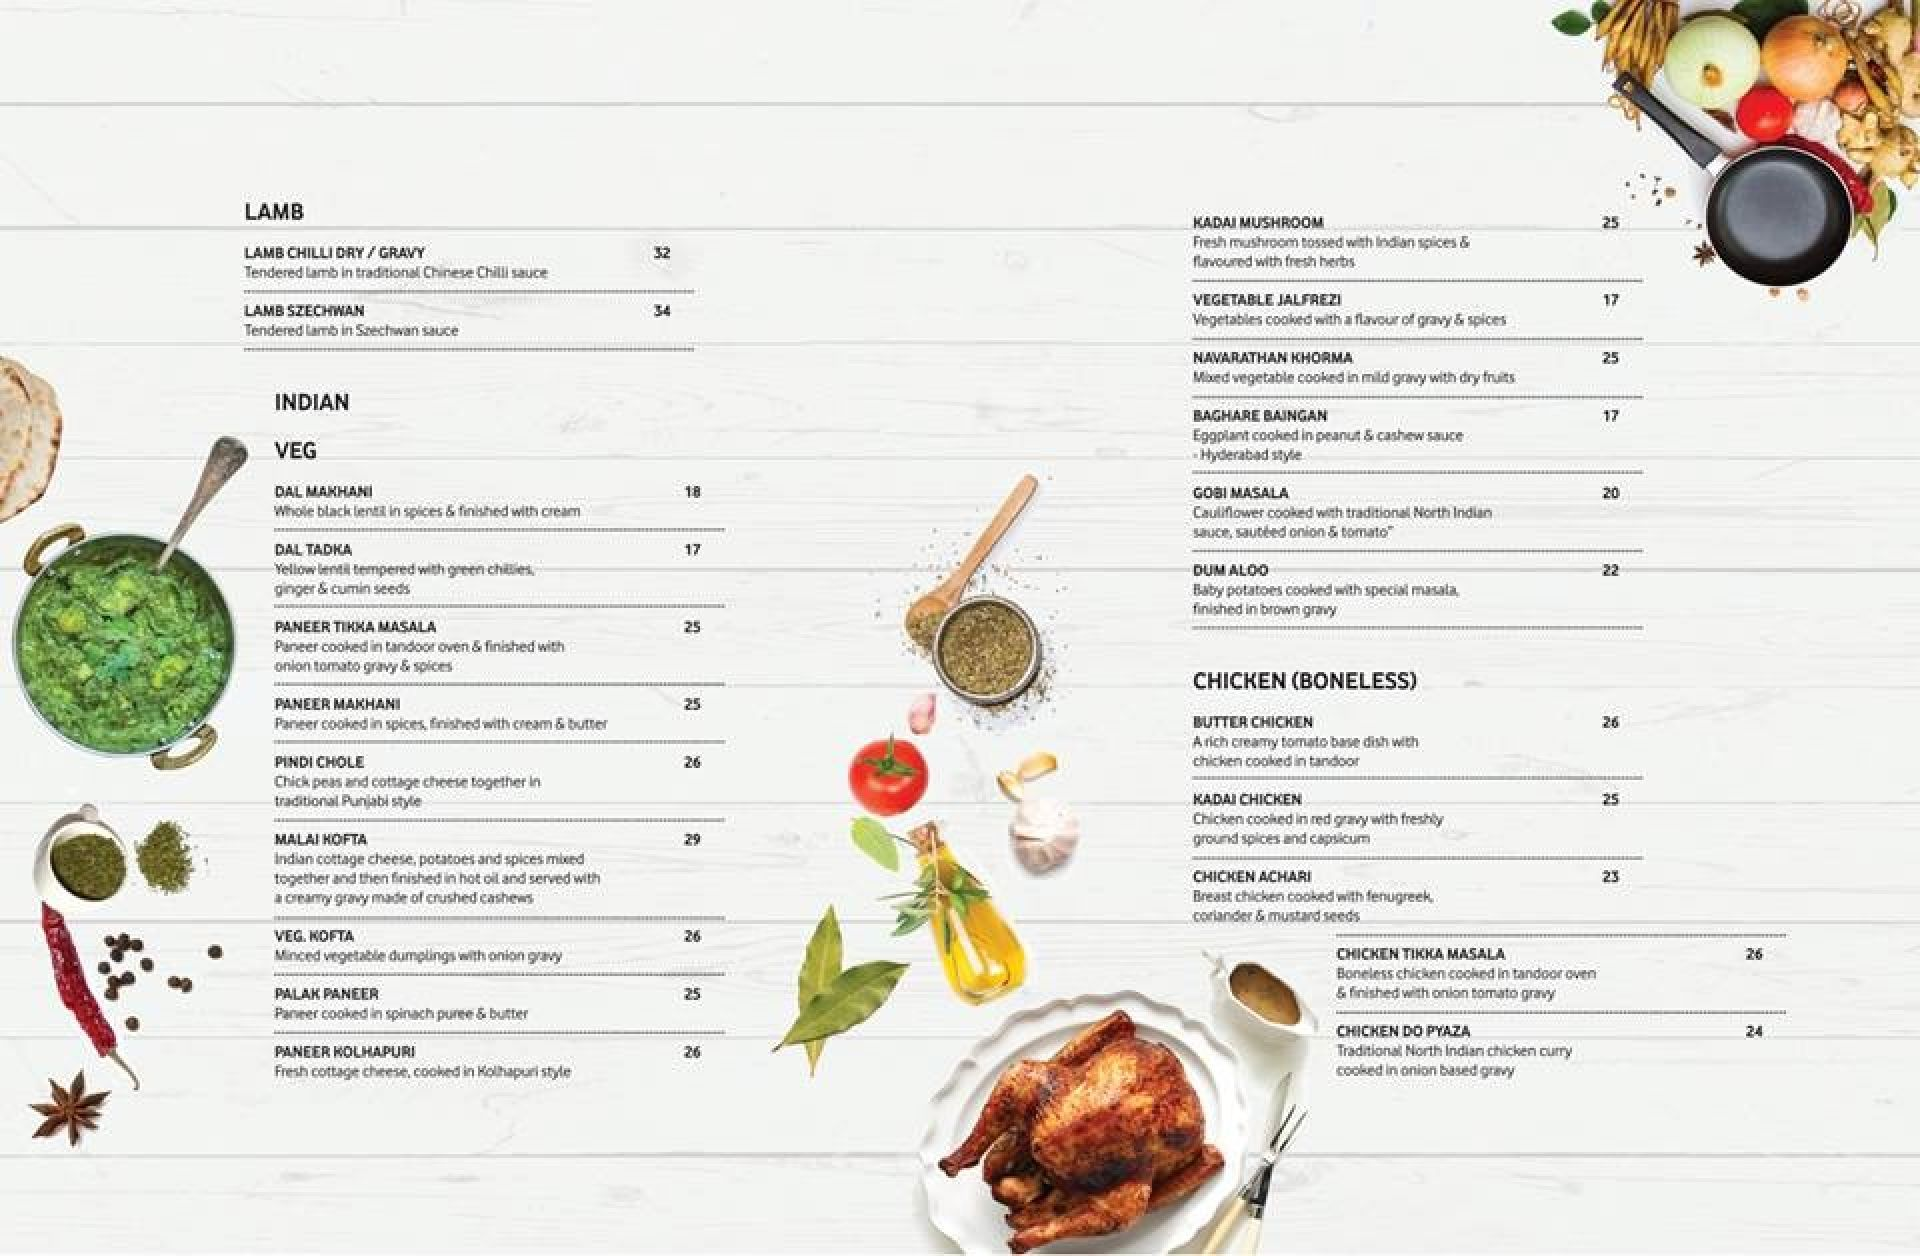 Menu of the Shwe's Delight